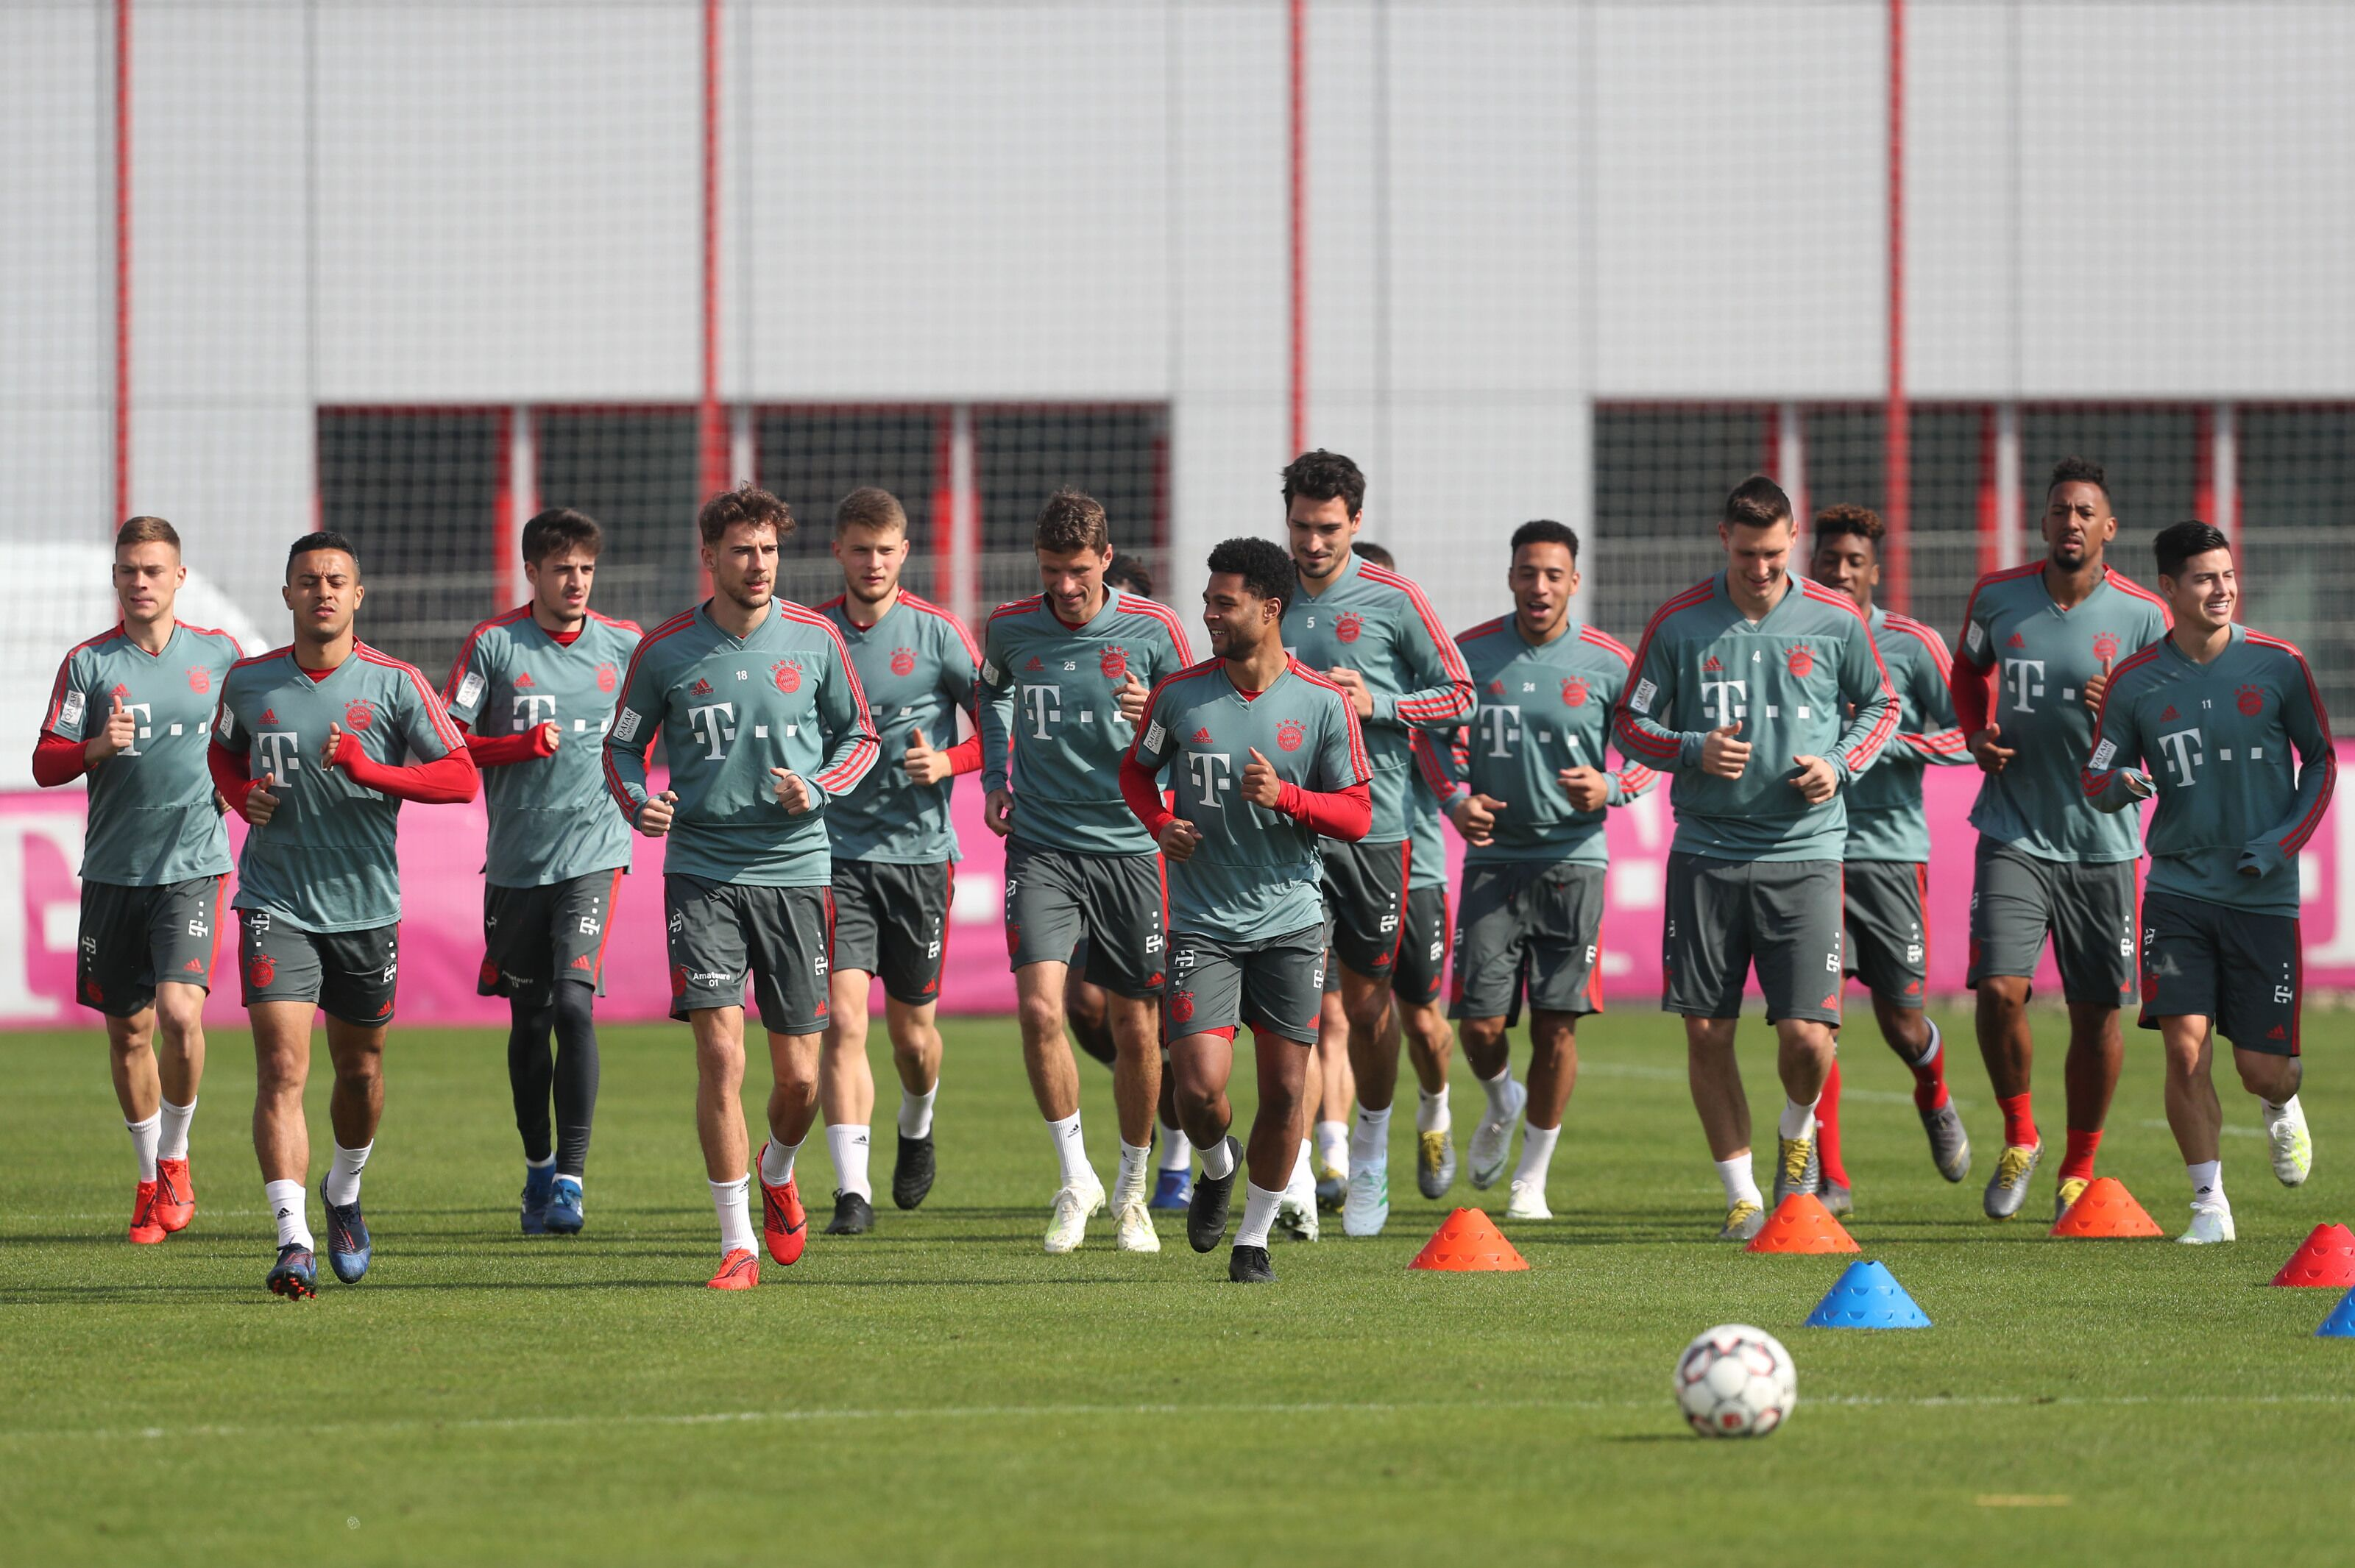 86aa4263c Bayern Munich gear up for pivotal DFB Pokal clash against Heidenheim